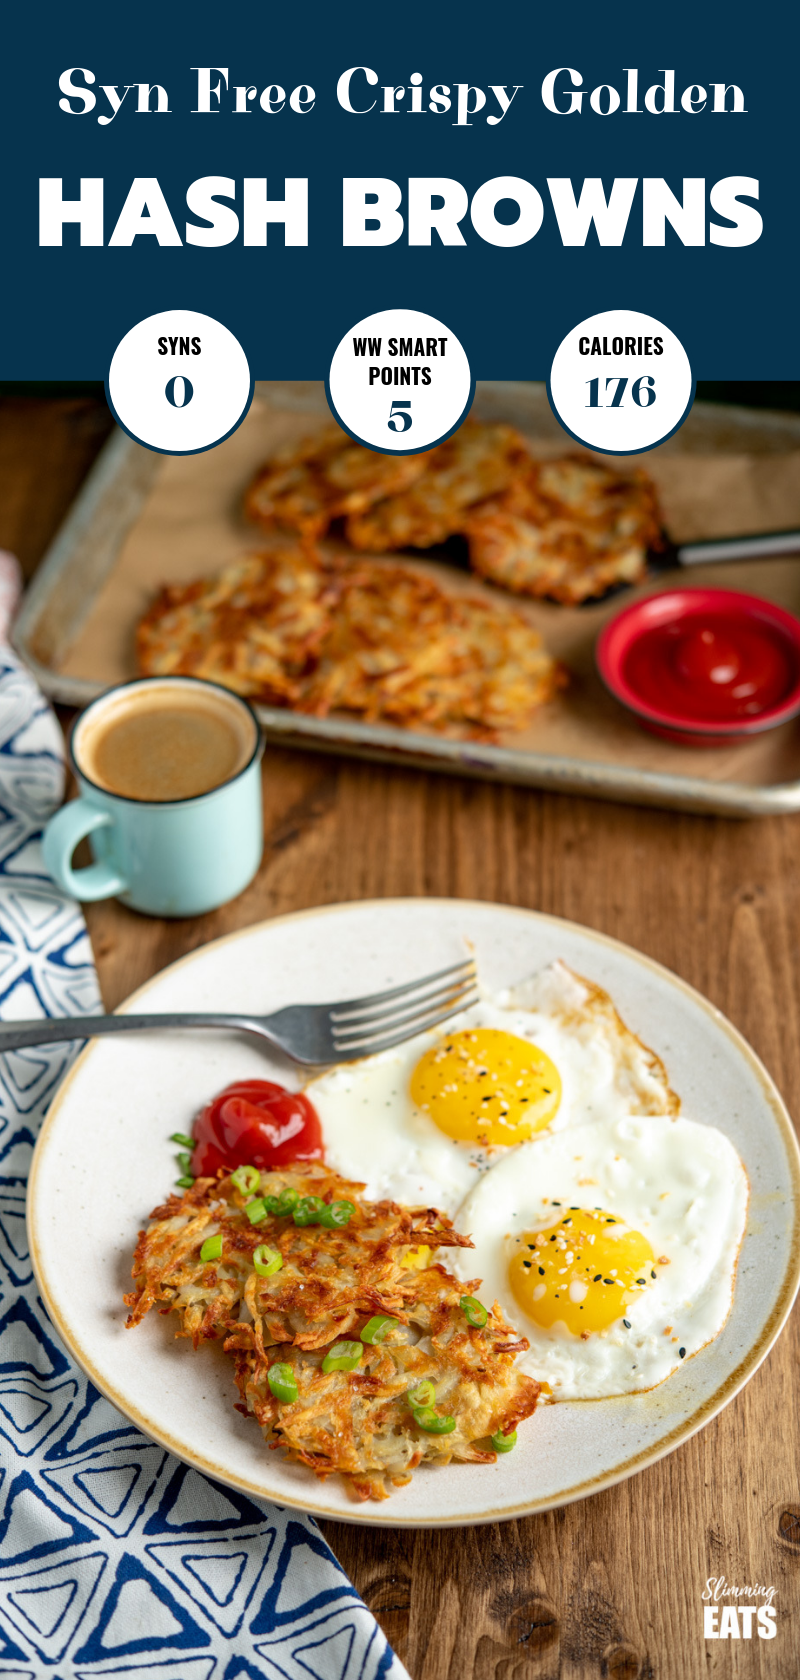 Syn Free hash brown pin image